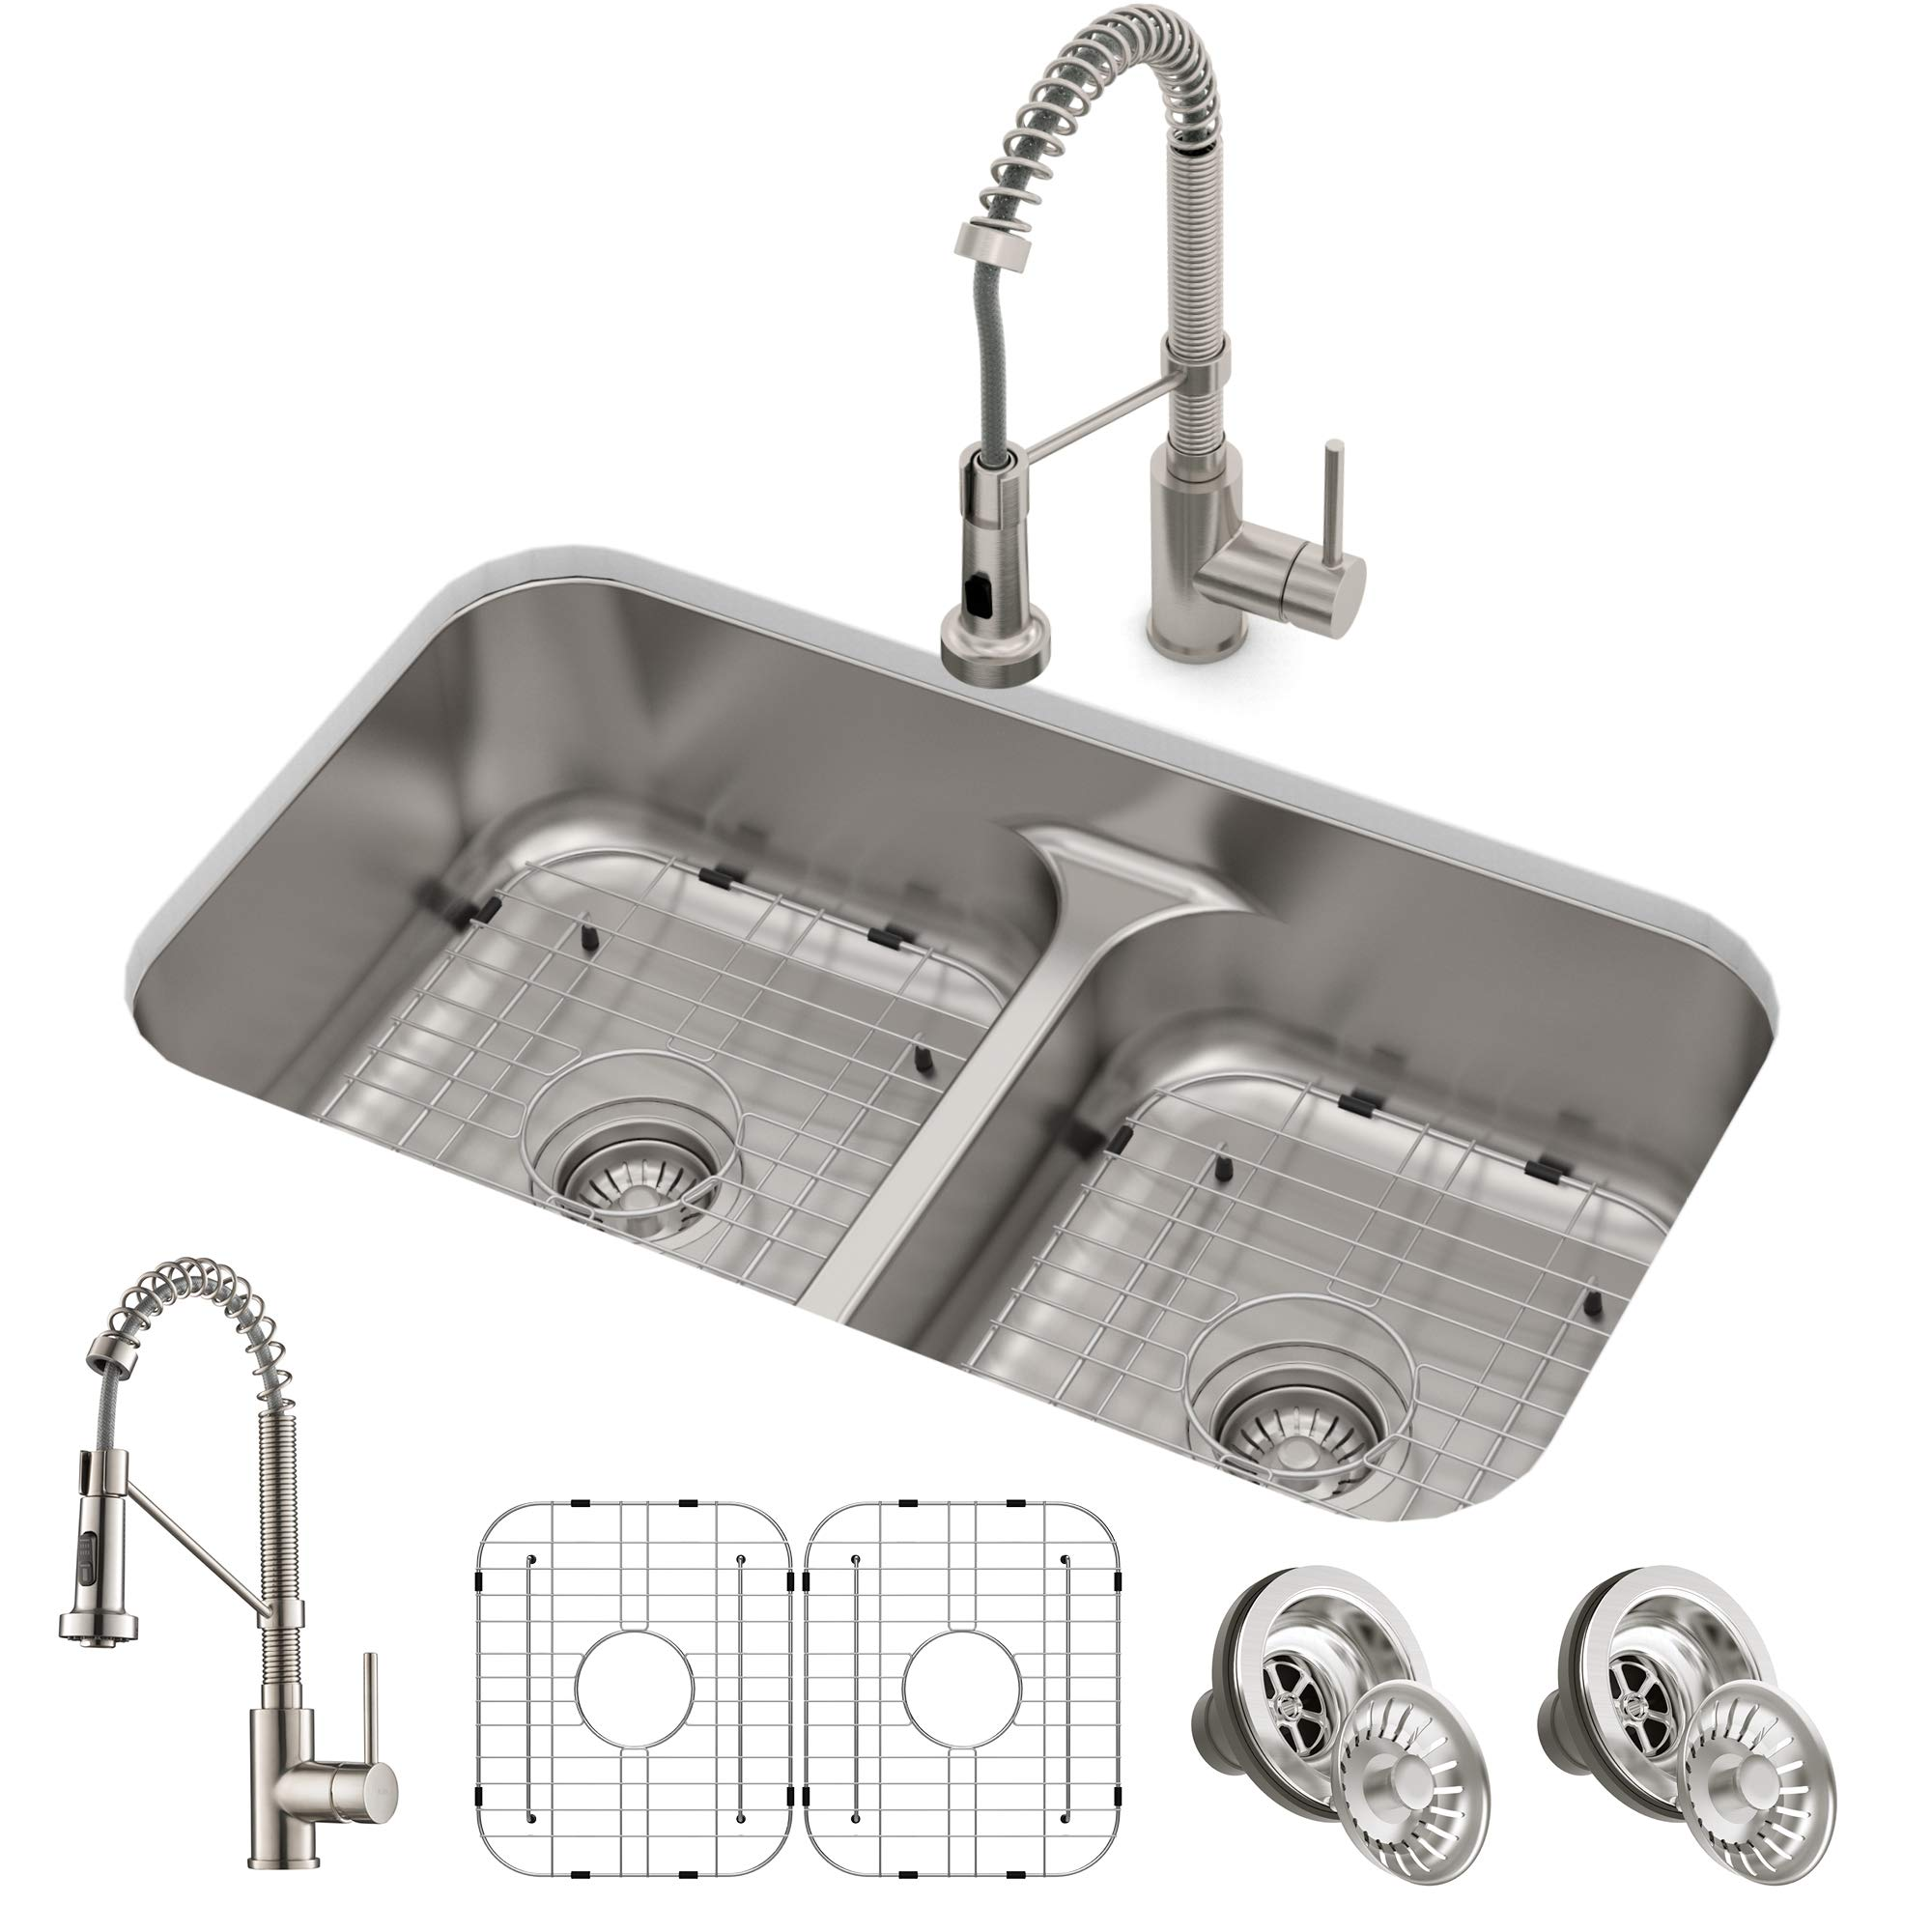 KRAUS KCA-1200 Ellis Kitchen Combo Set with 33-inch 16 Gauge Undermount Kitchen Sink and Bolden 18-inch Pull-Down Commercial Style Kitchen Faucet, Stainless Steel Finish by Kraus (Image #1)